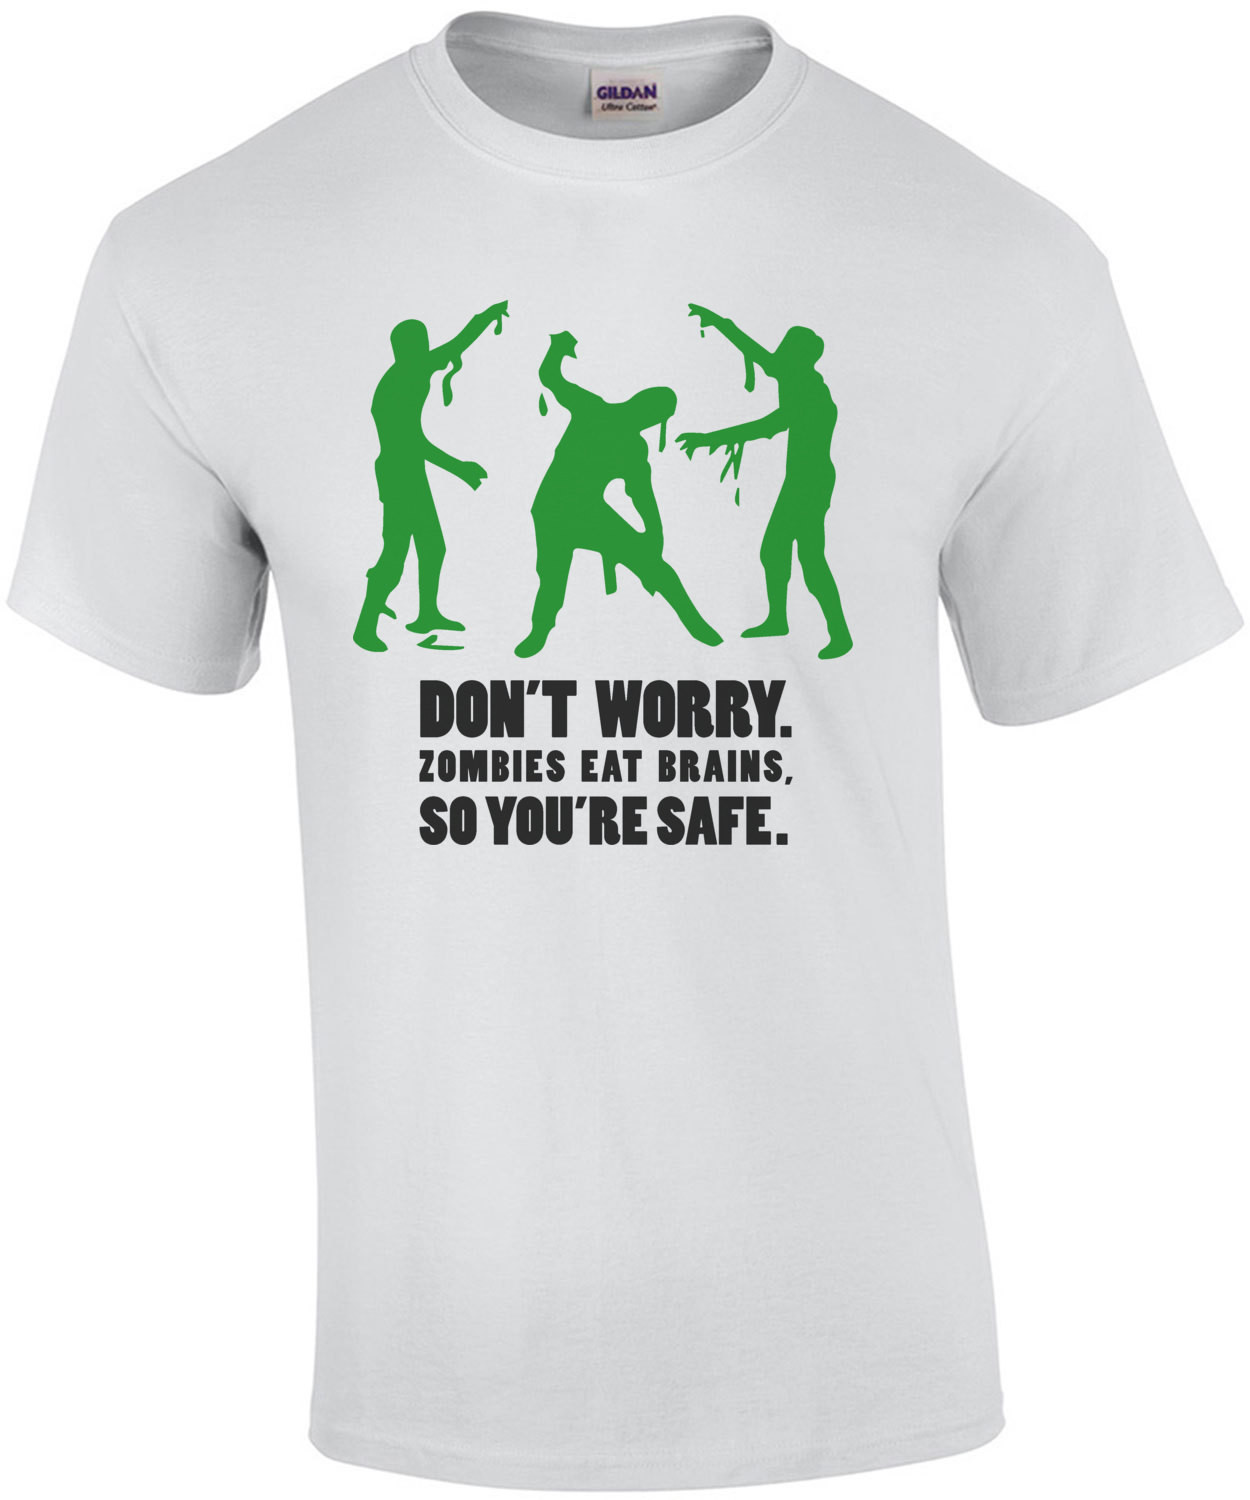 Don't worry. Zombies eat brains, so you're safe. Funny Zombie